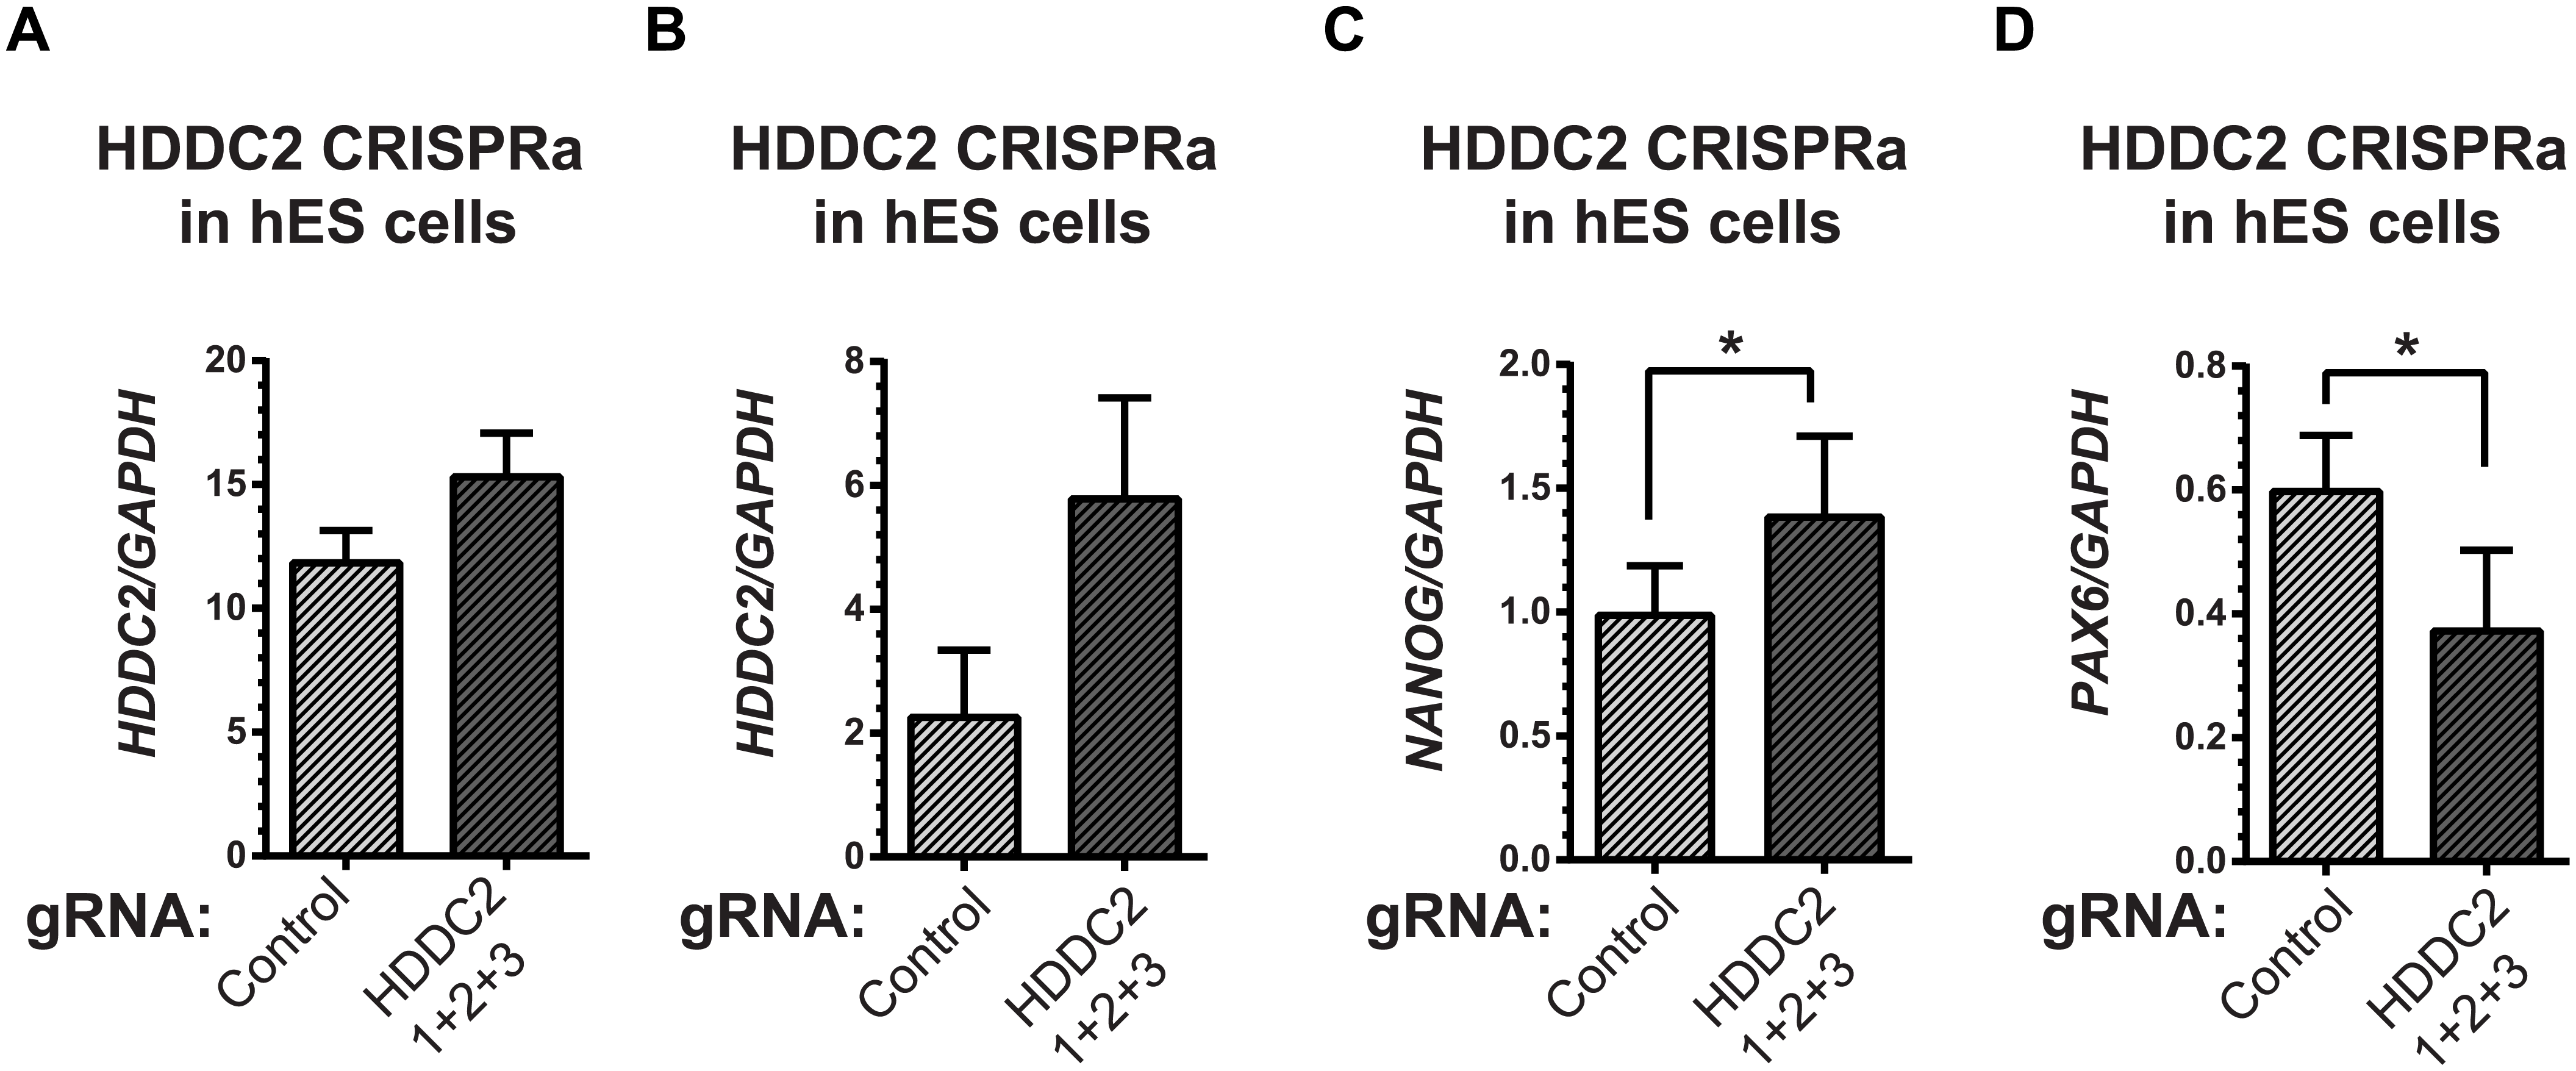 Activation of the endogenous <i>HDDC2</i> locus using an inducible Cas9-VP64 system attenuates neural differentiation of human pluripotent stem cells.